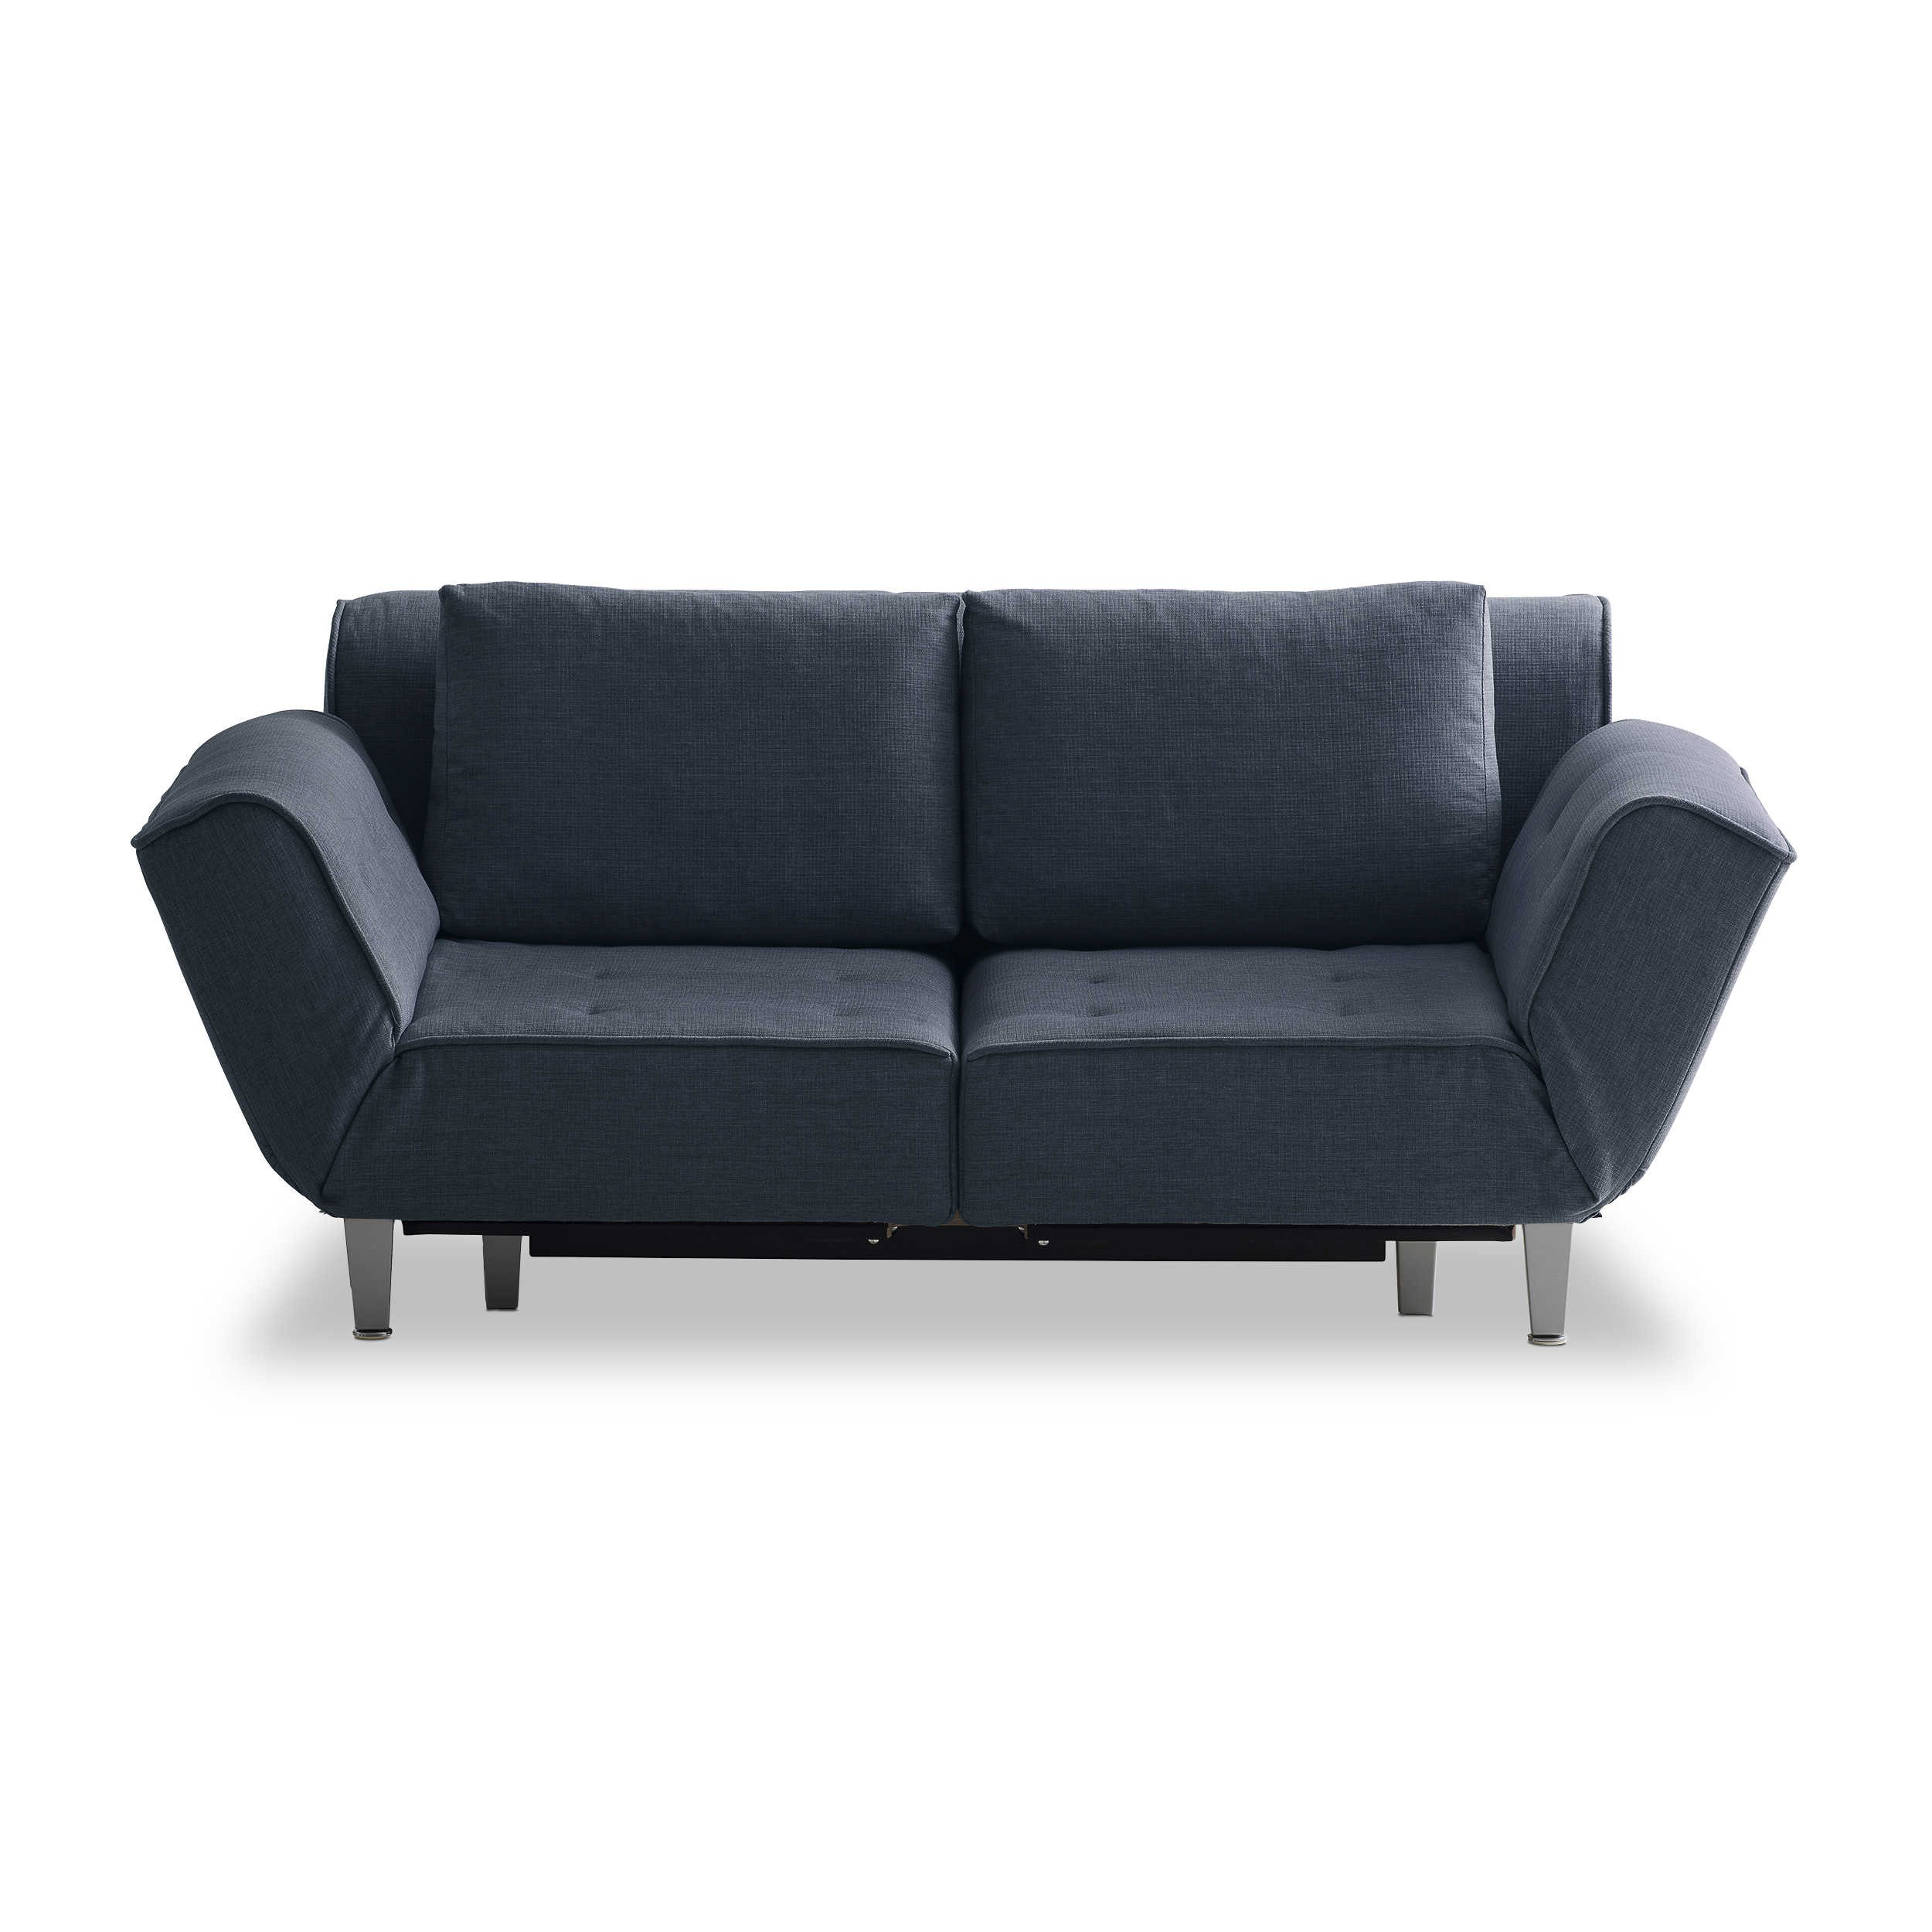 franz fertig schlafsofa joss blau stoff online kaufen bei woonio. Black Bedroom Furniture Sets. Home Design Ideas